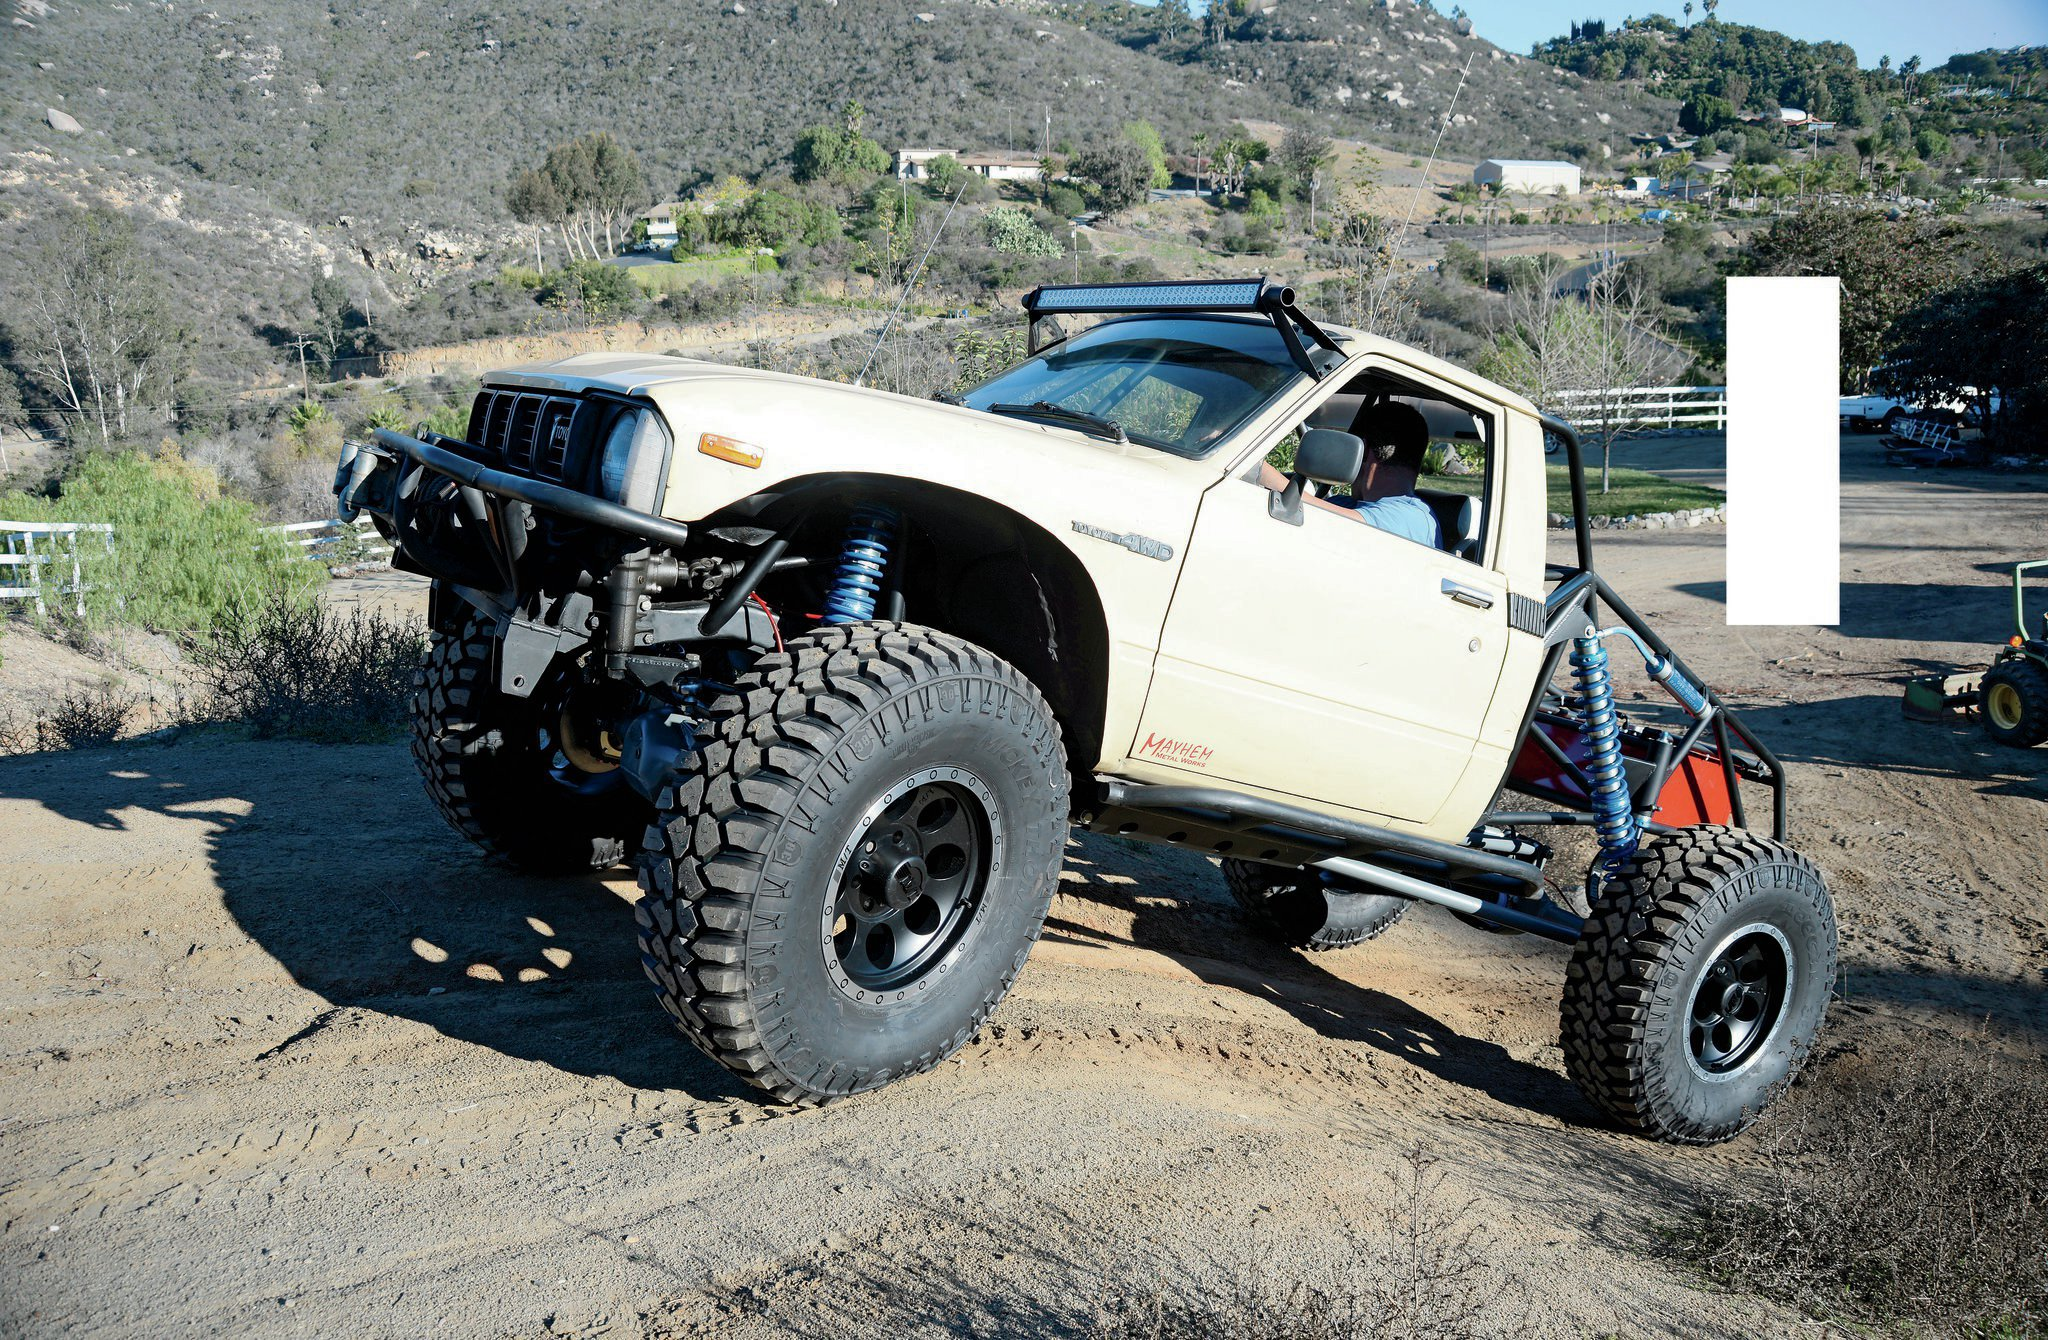 Finishing up the Coilover Conversion on Our 1981 Toyota Trekker